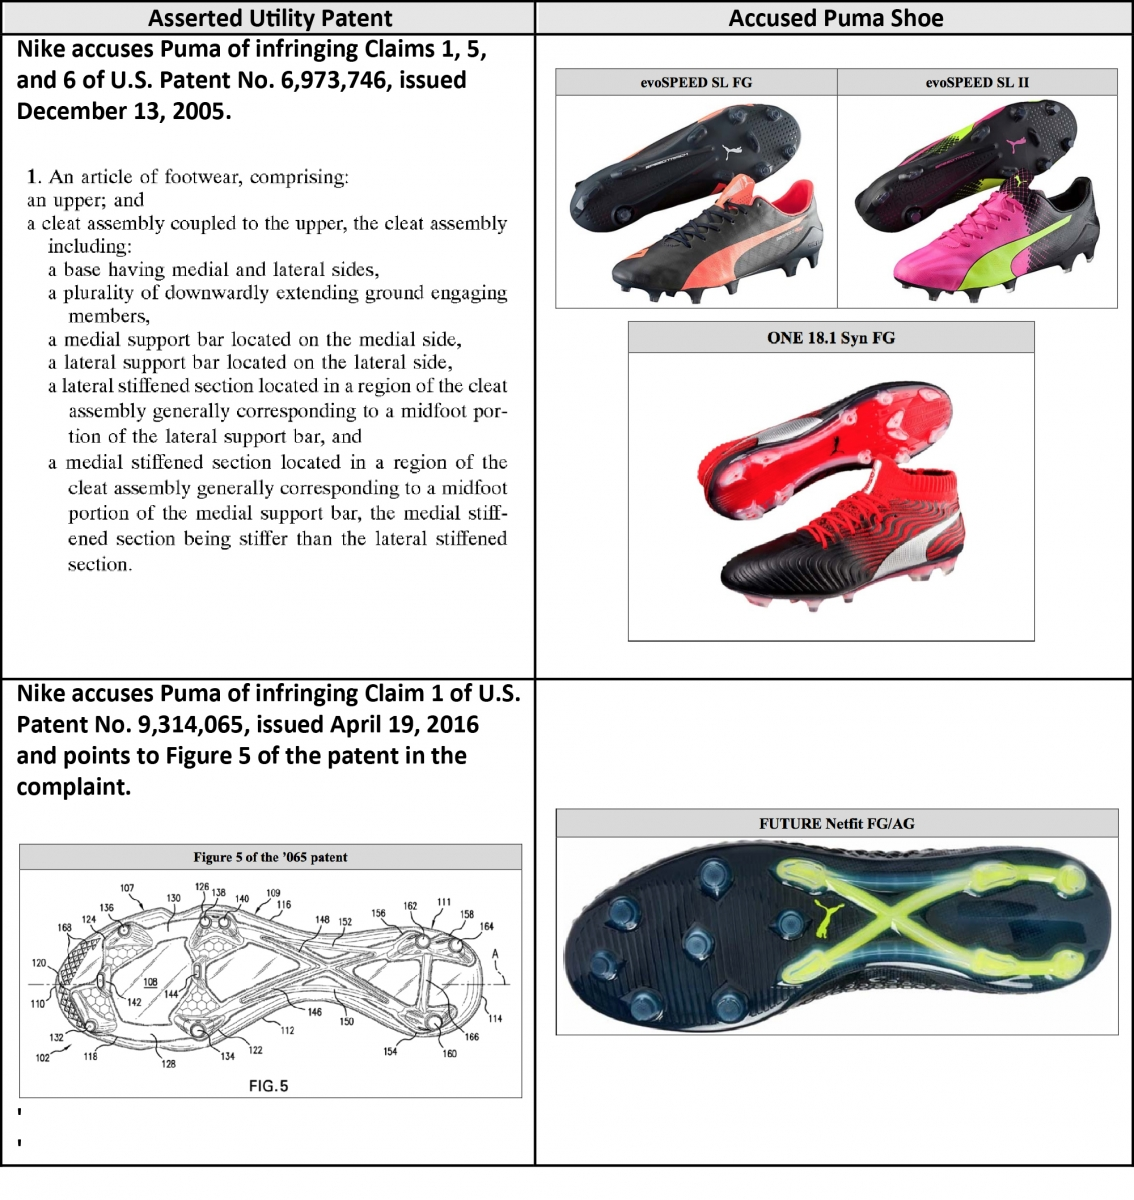 4001c2cc51a Nike alleges that the following Puma shoes infringe its cleated assembly  technologies